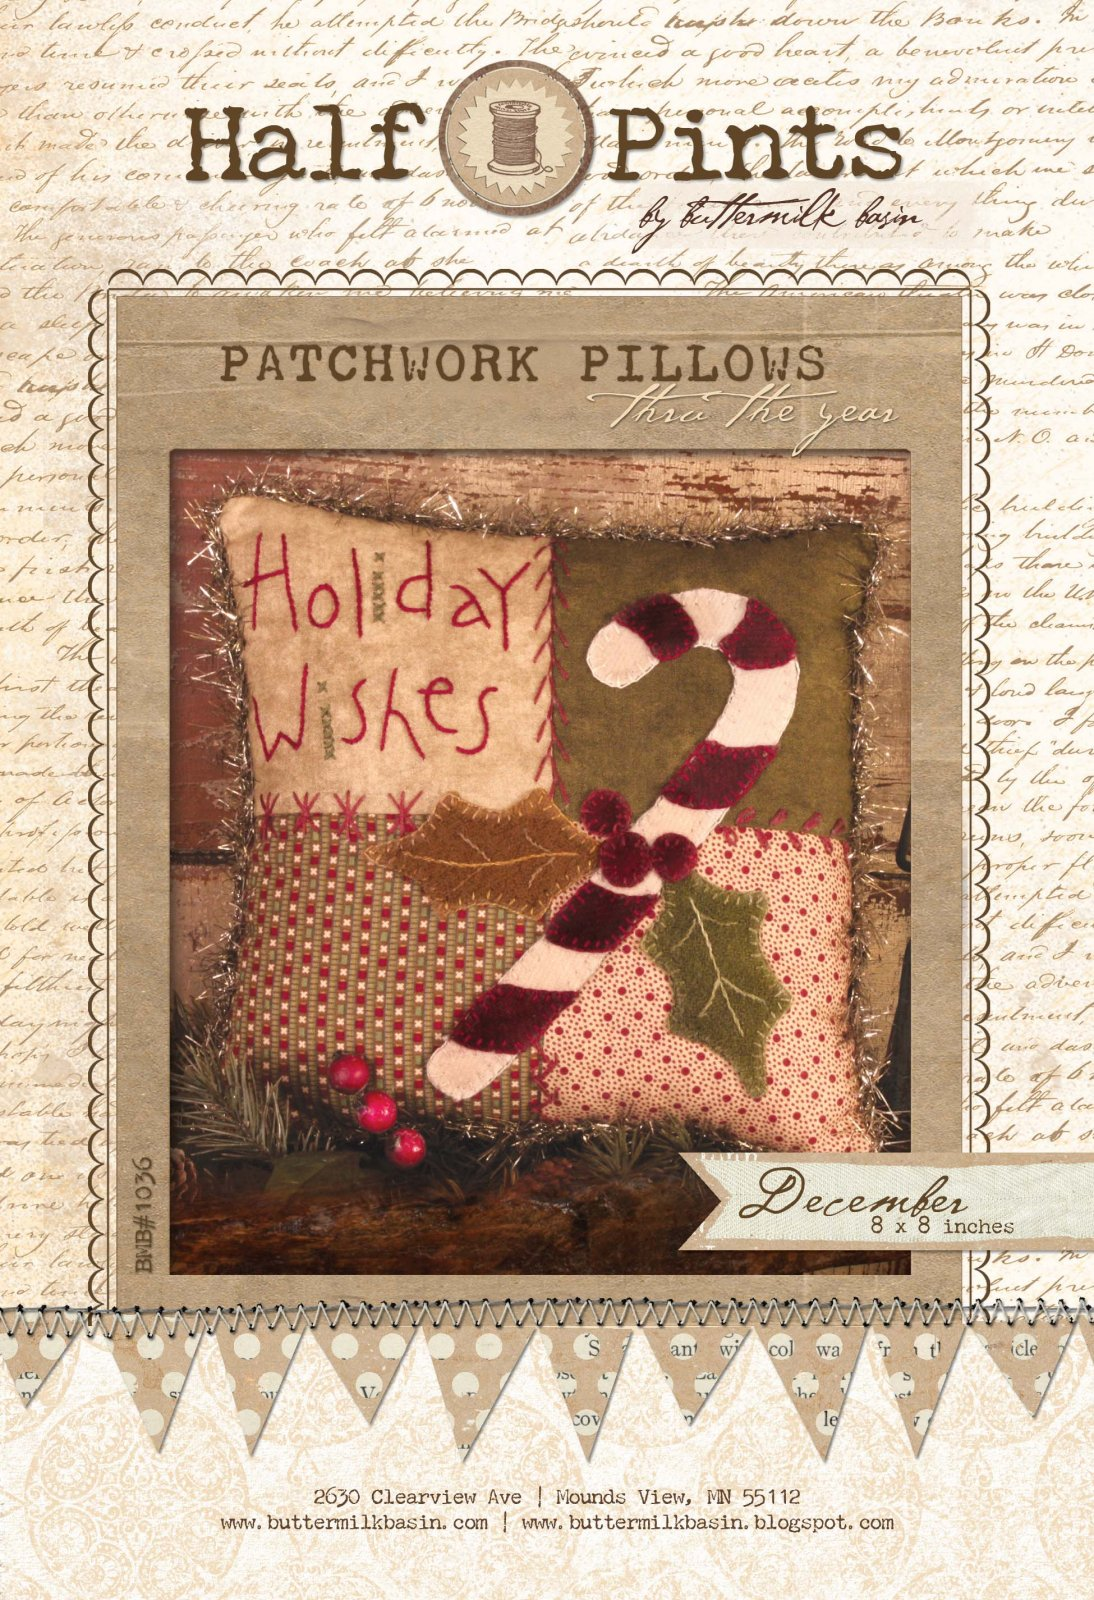 Patchwork Pillows Thru The Year - December